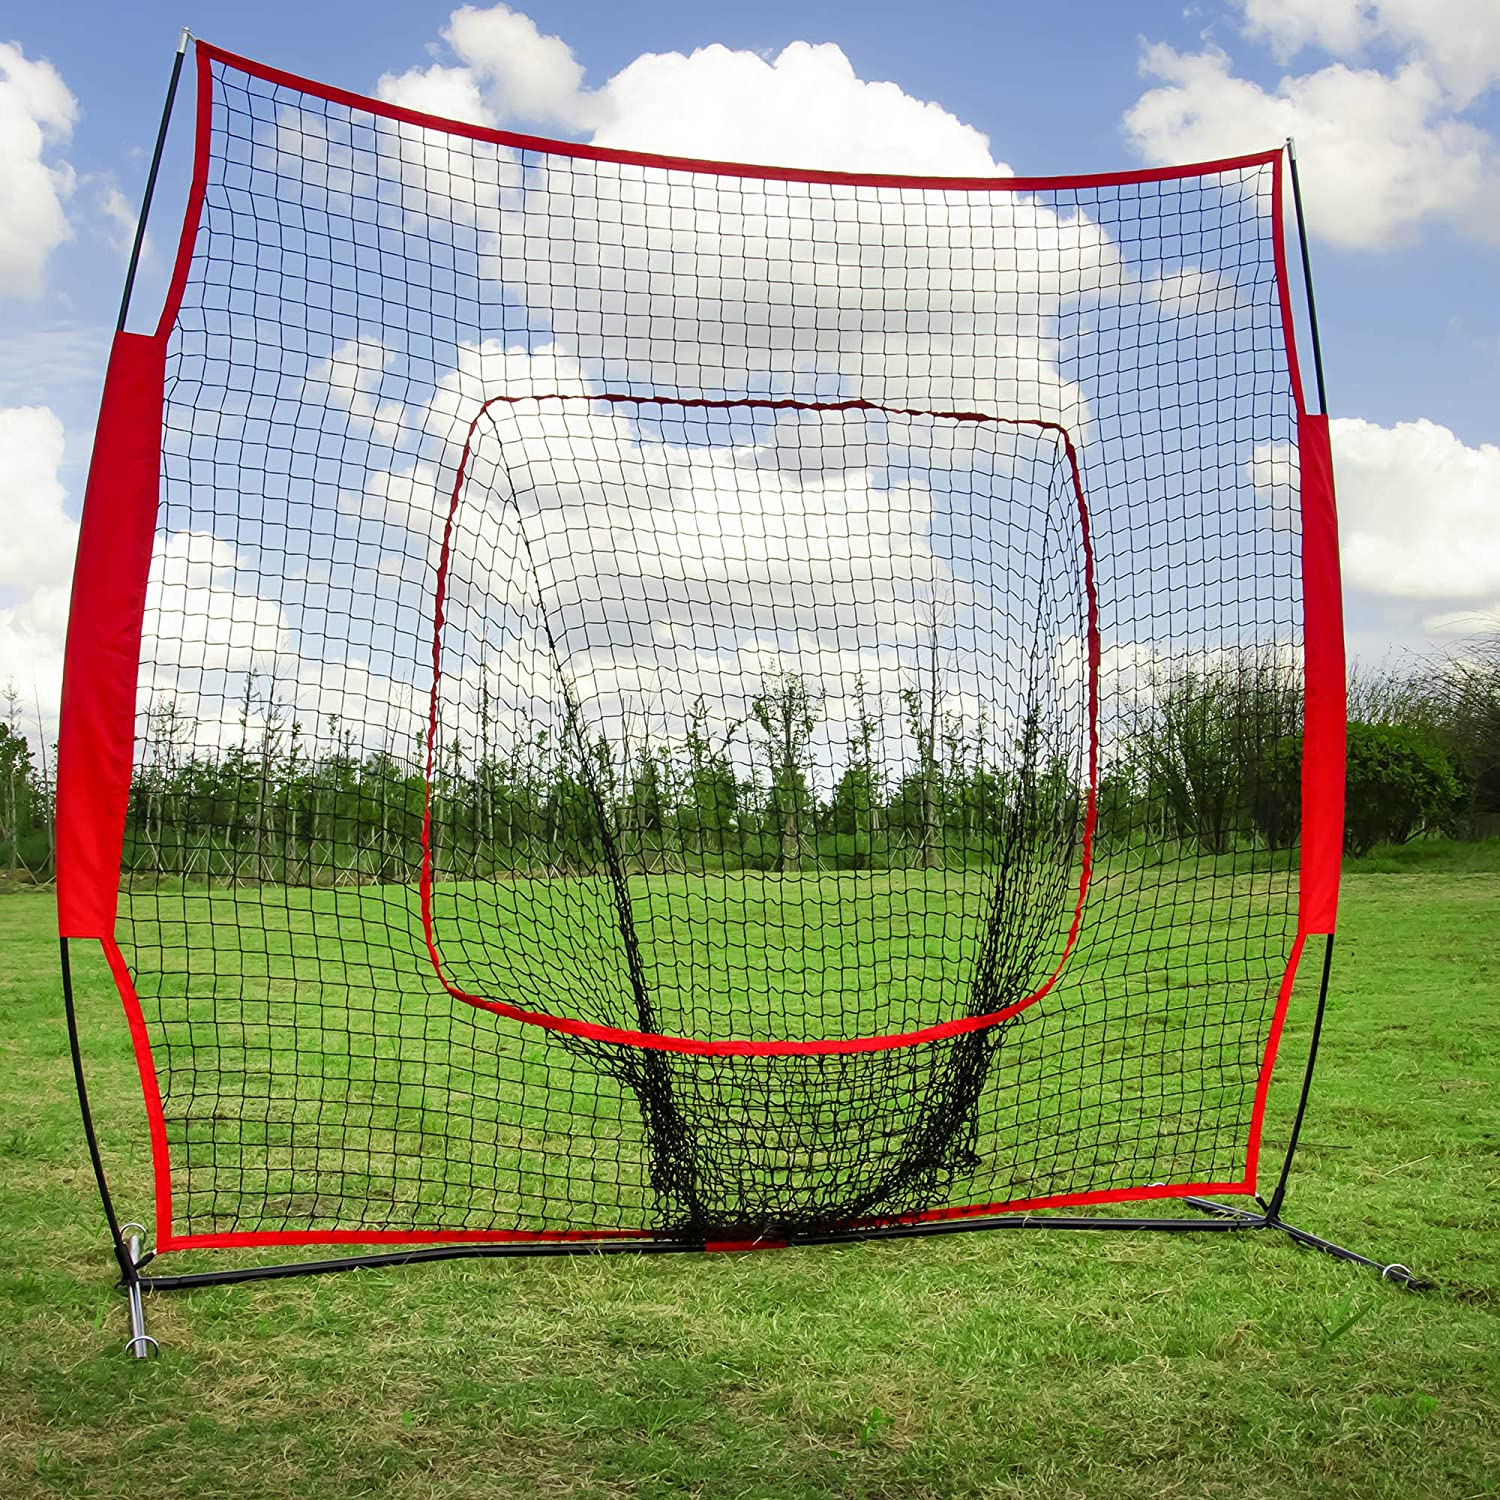 PORAY Collapsible Baseball Net Softball Net, Batting Fielding Practice 7 x 7 Large Mouth Outdoor Sports Net with Bow Net Frame Carry Bag